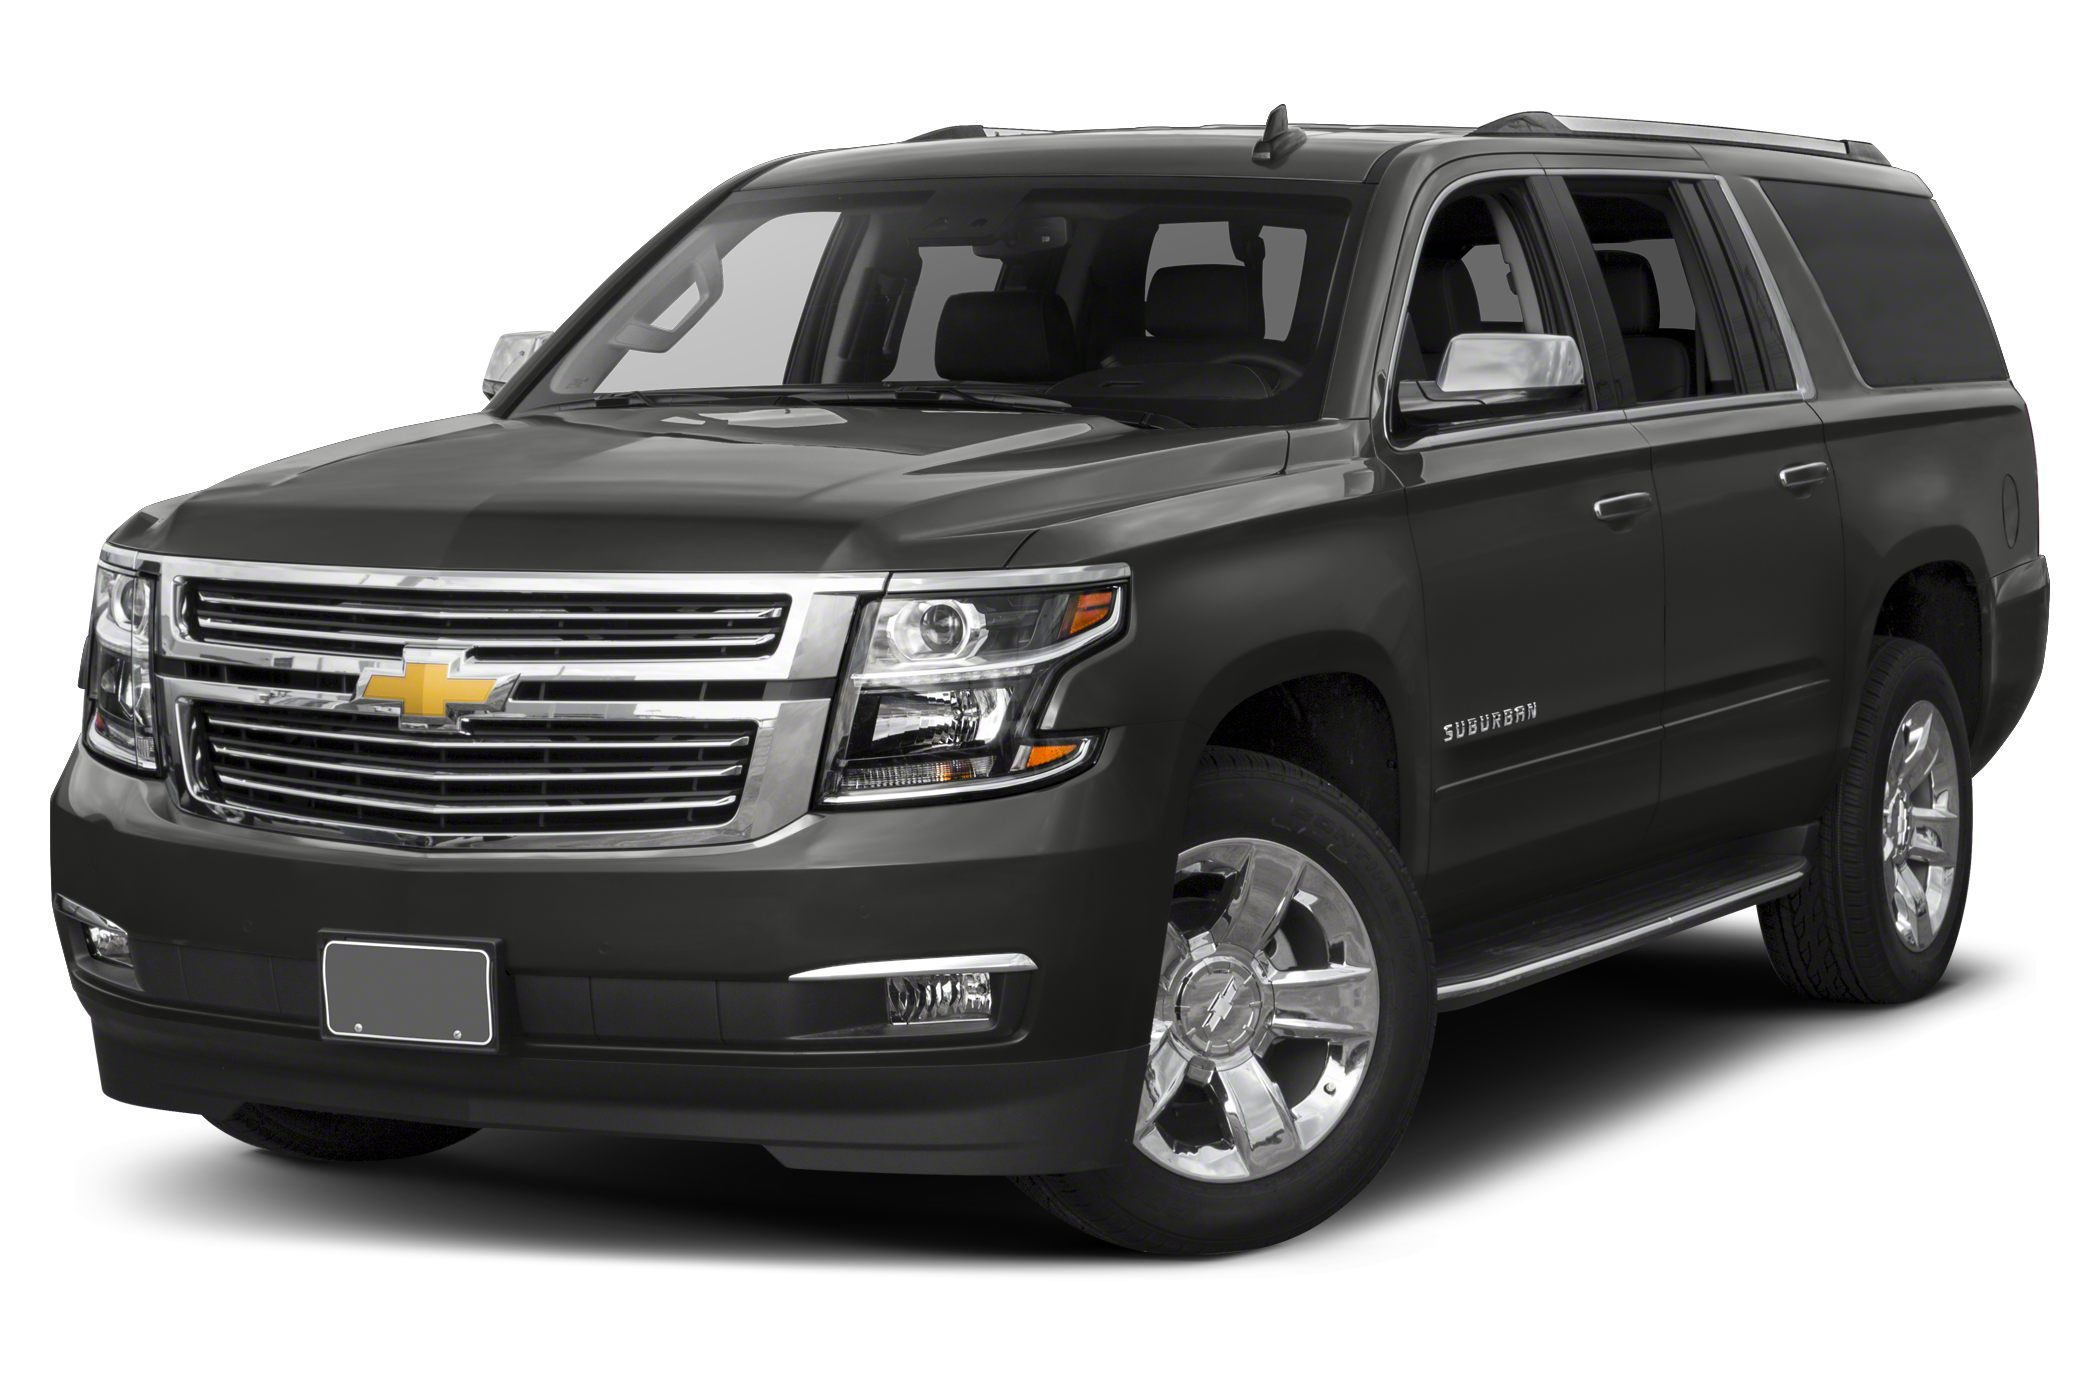 2017 Chevrolet Suburban Premier 4x4 Pricing And Options